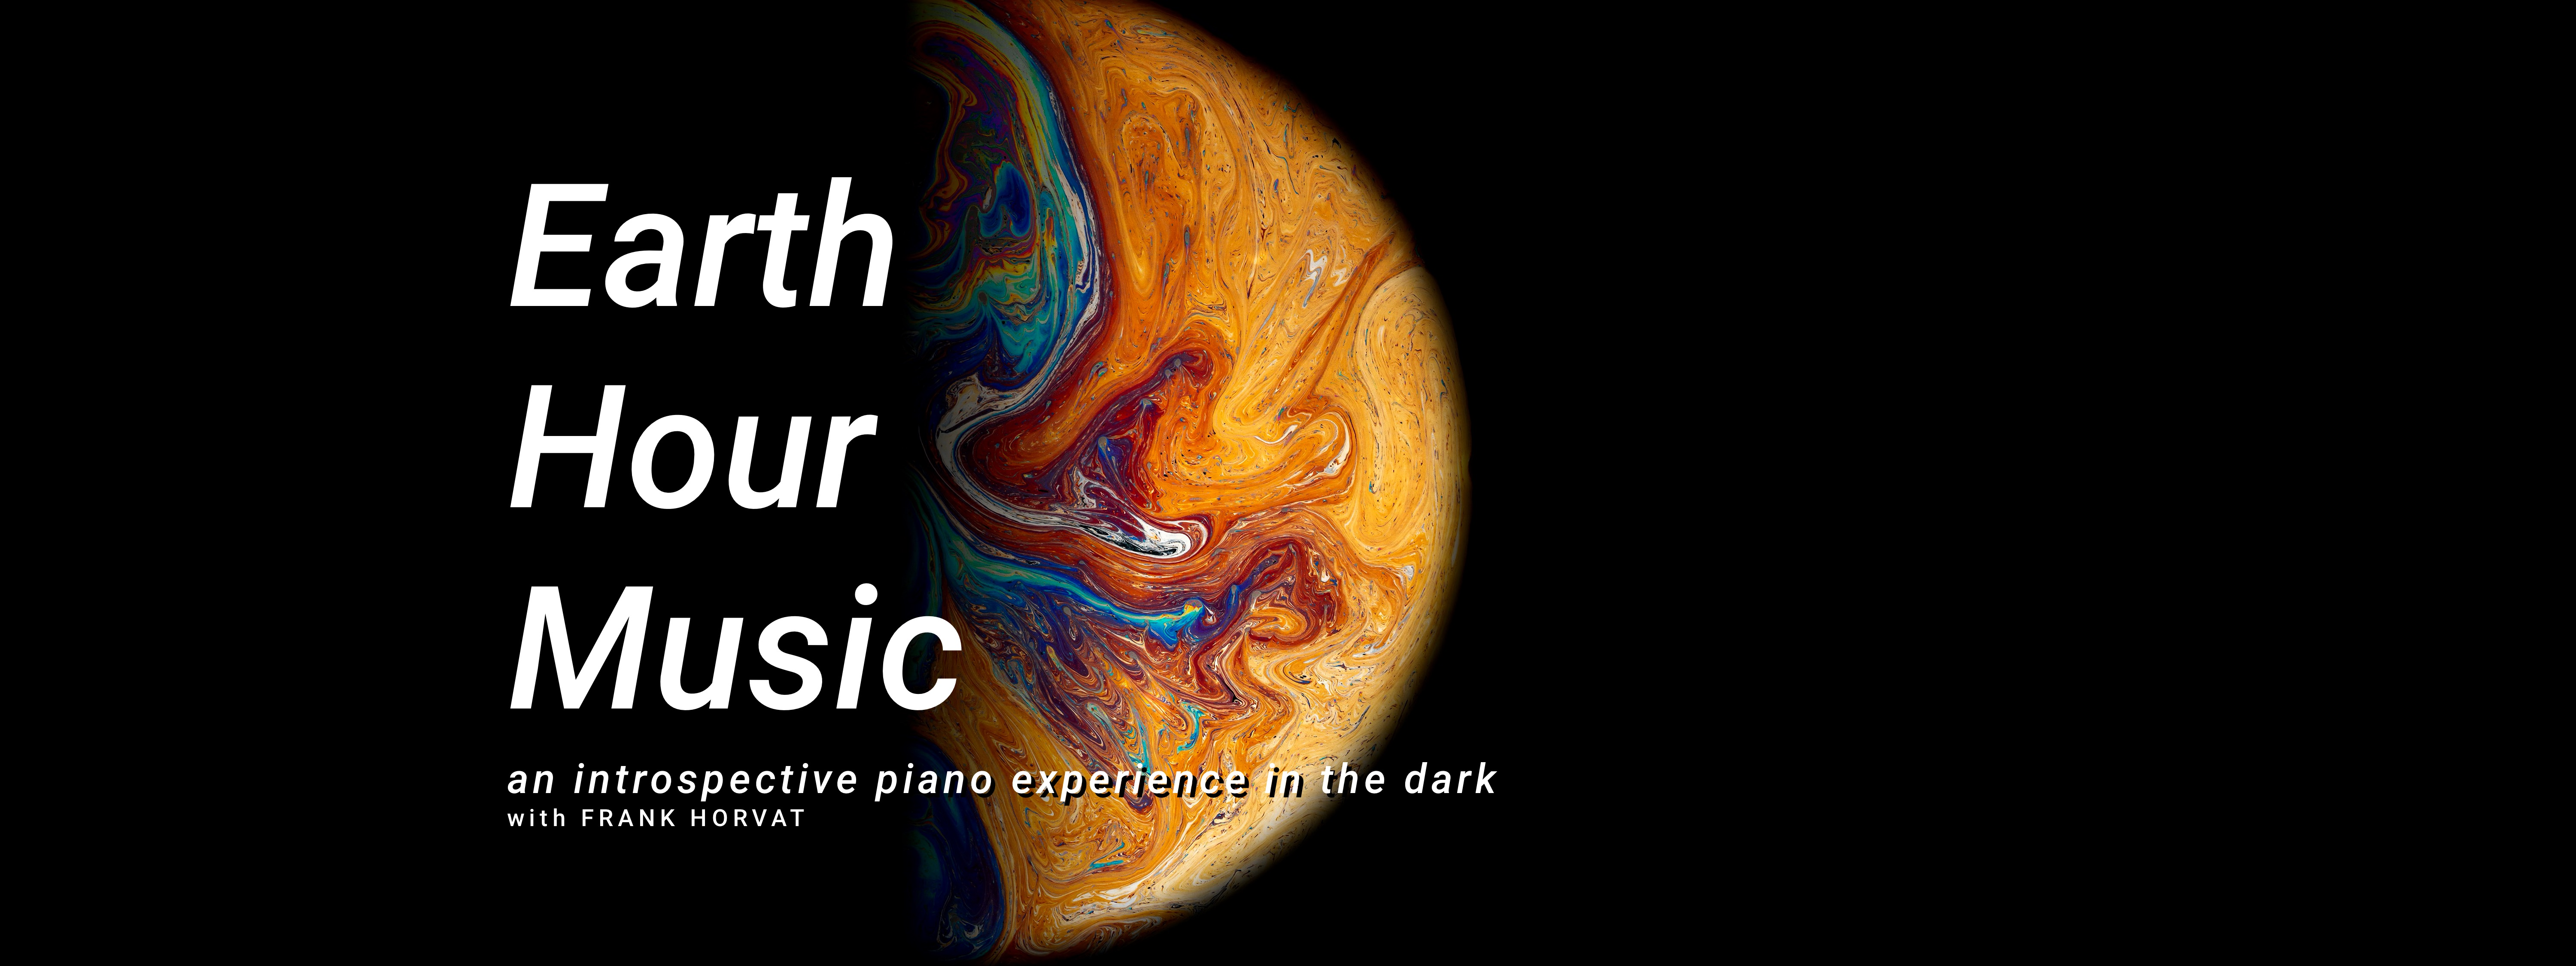 Earth Hour Music - an introspective piano experience in the dark with Frank Horvat